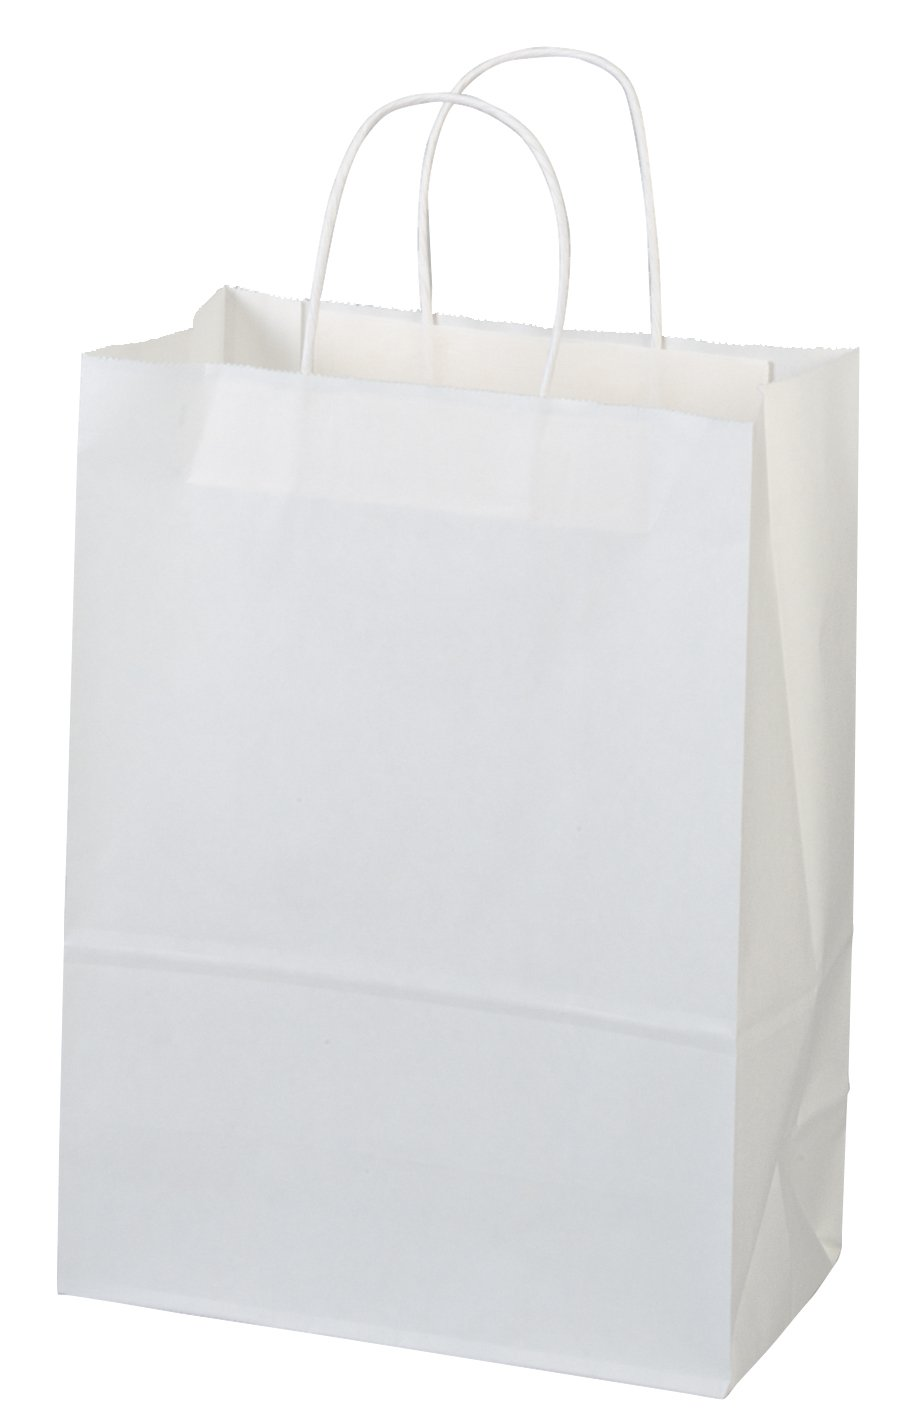 Flexicore Packaging 10''x5''x13'' - 100 Pcs - White Kraft Paper Bags, Shopping, Merchandise, Party, Gift Bags by Flexicore Packaging